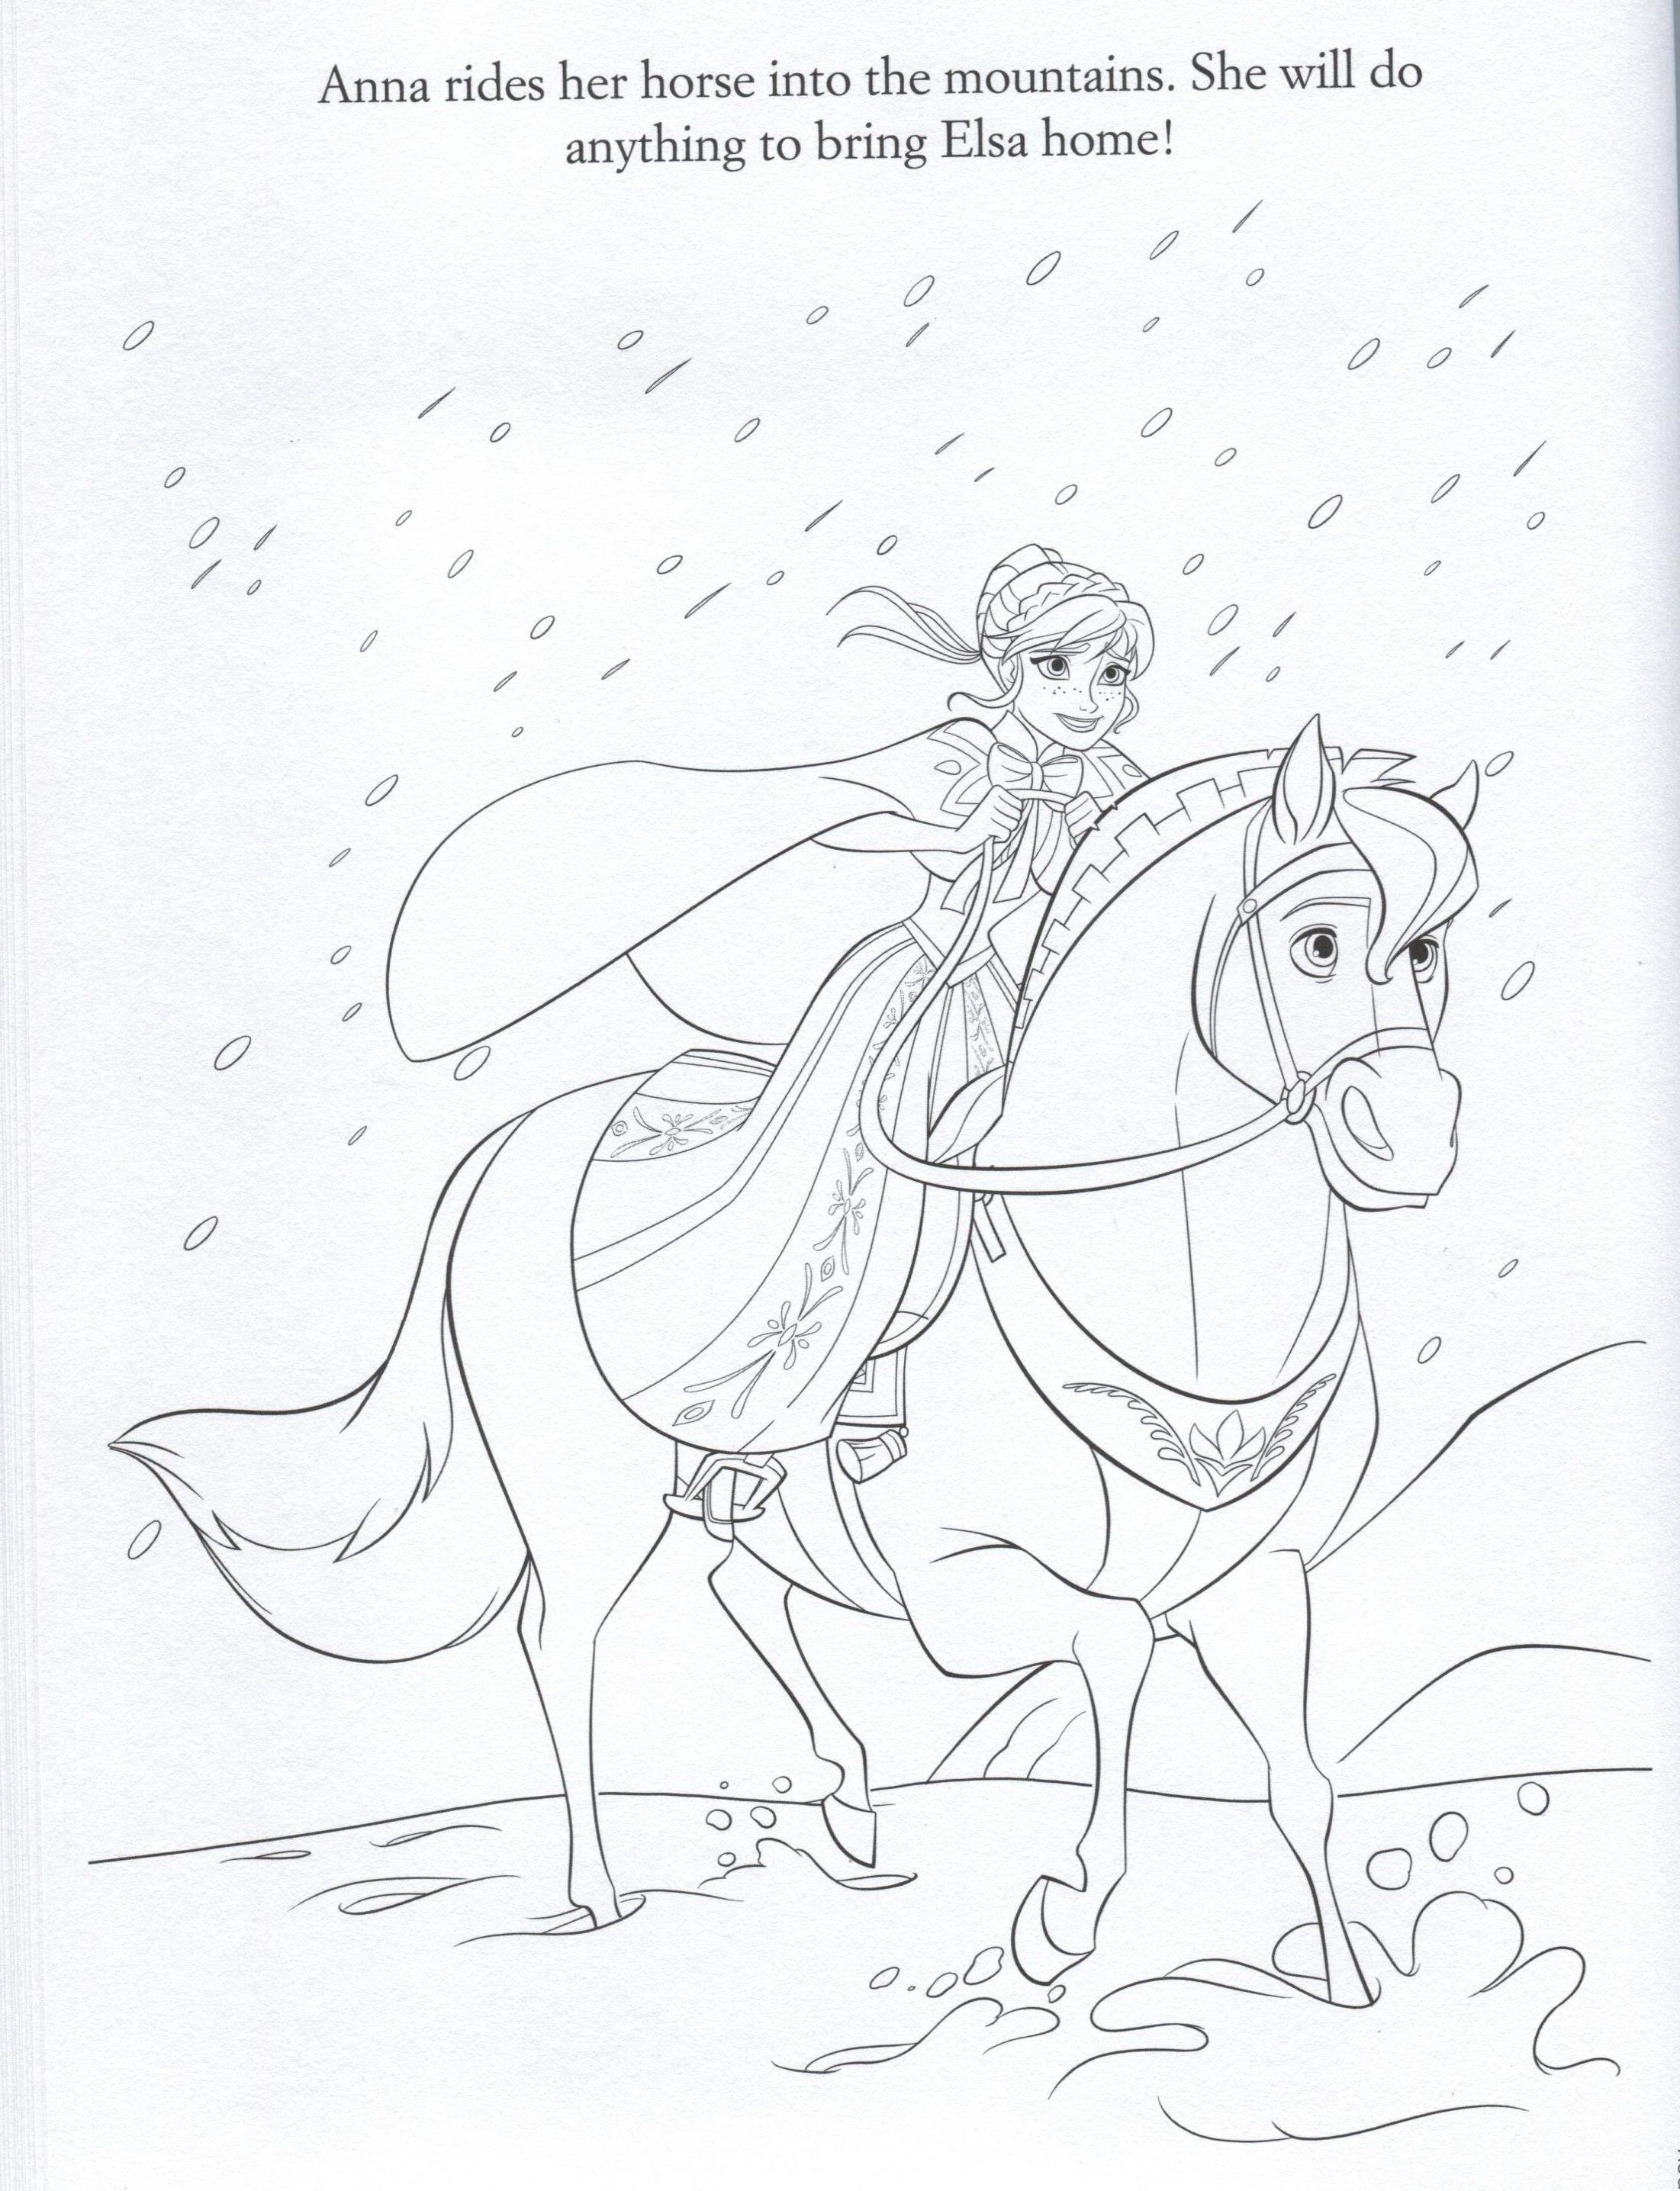 Official frozen illustrations (coloring pages) - Disney Frozen Coloring Sheets Official Frozen Illustrations Coloring Pages Frozen Photo